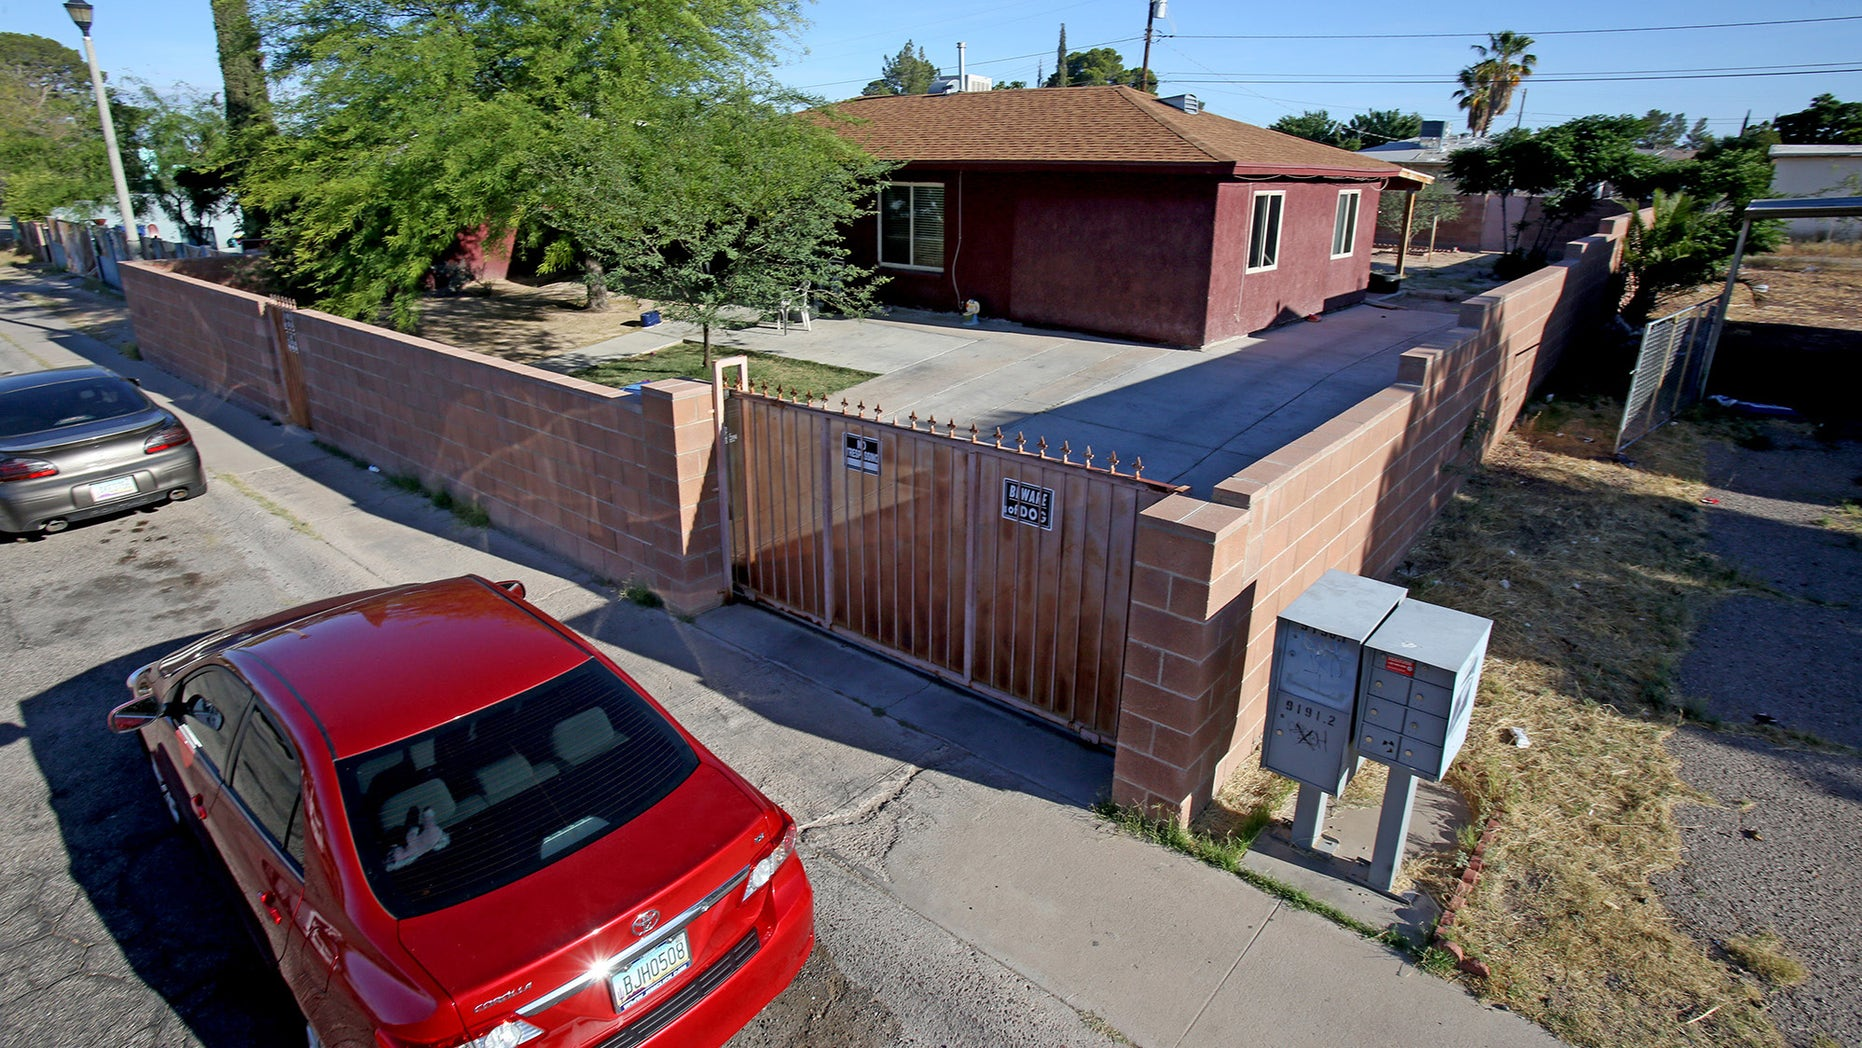 Five people died in a murder-suicide in Tucson, Arizona.